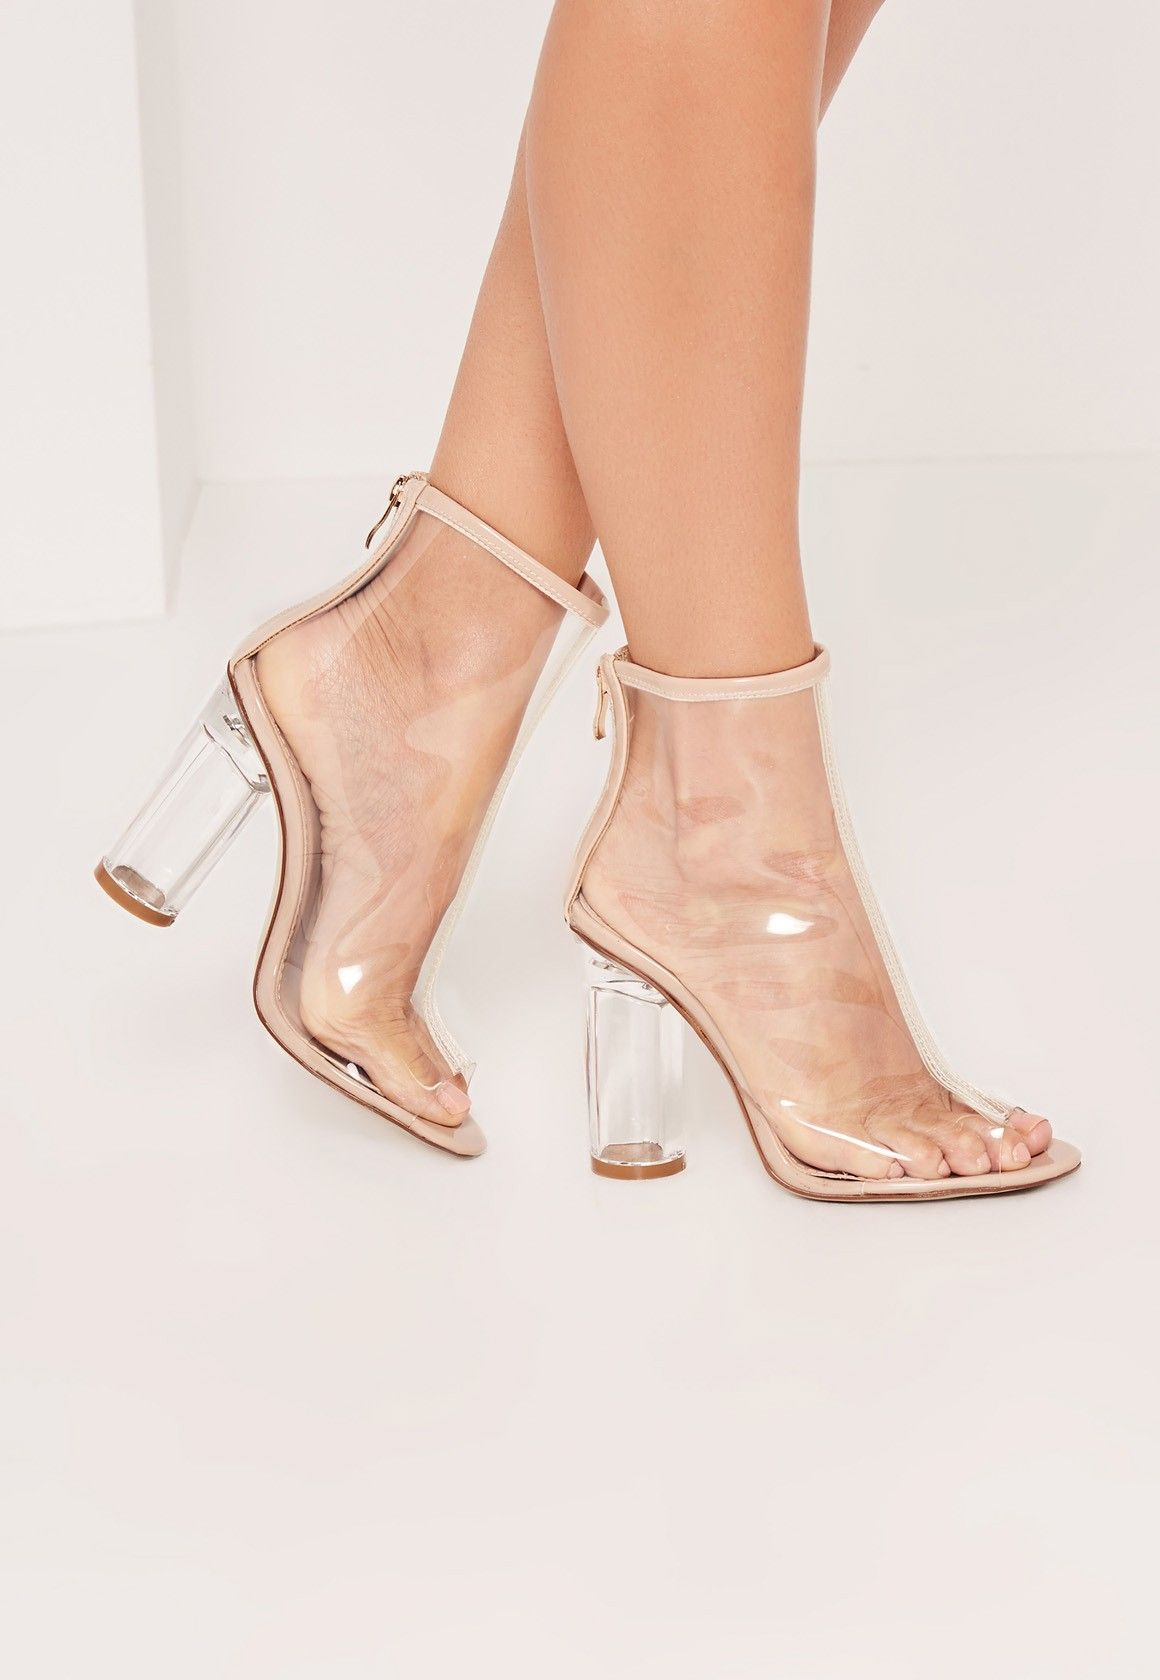 Missguided - Nude Perspex Peep Toe Heeled Ankle Boots